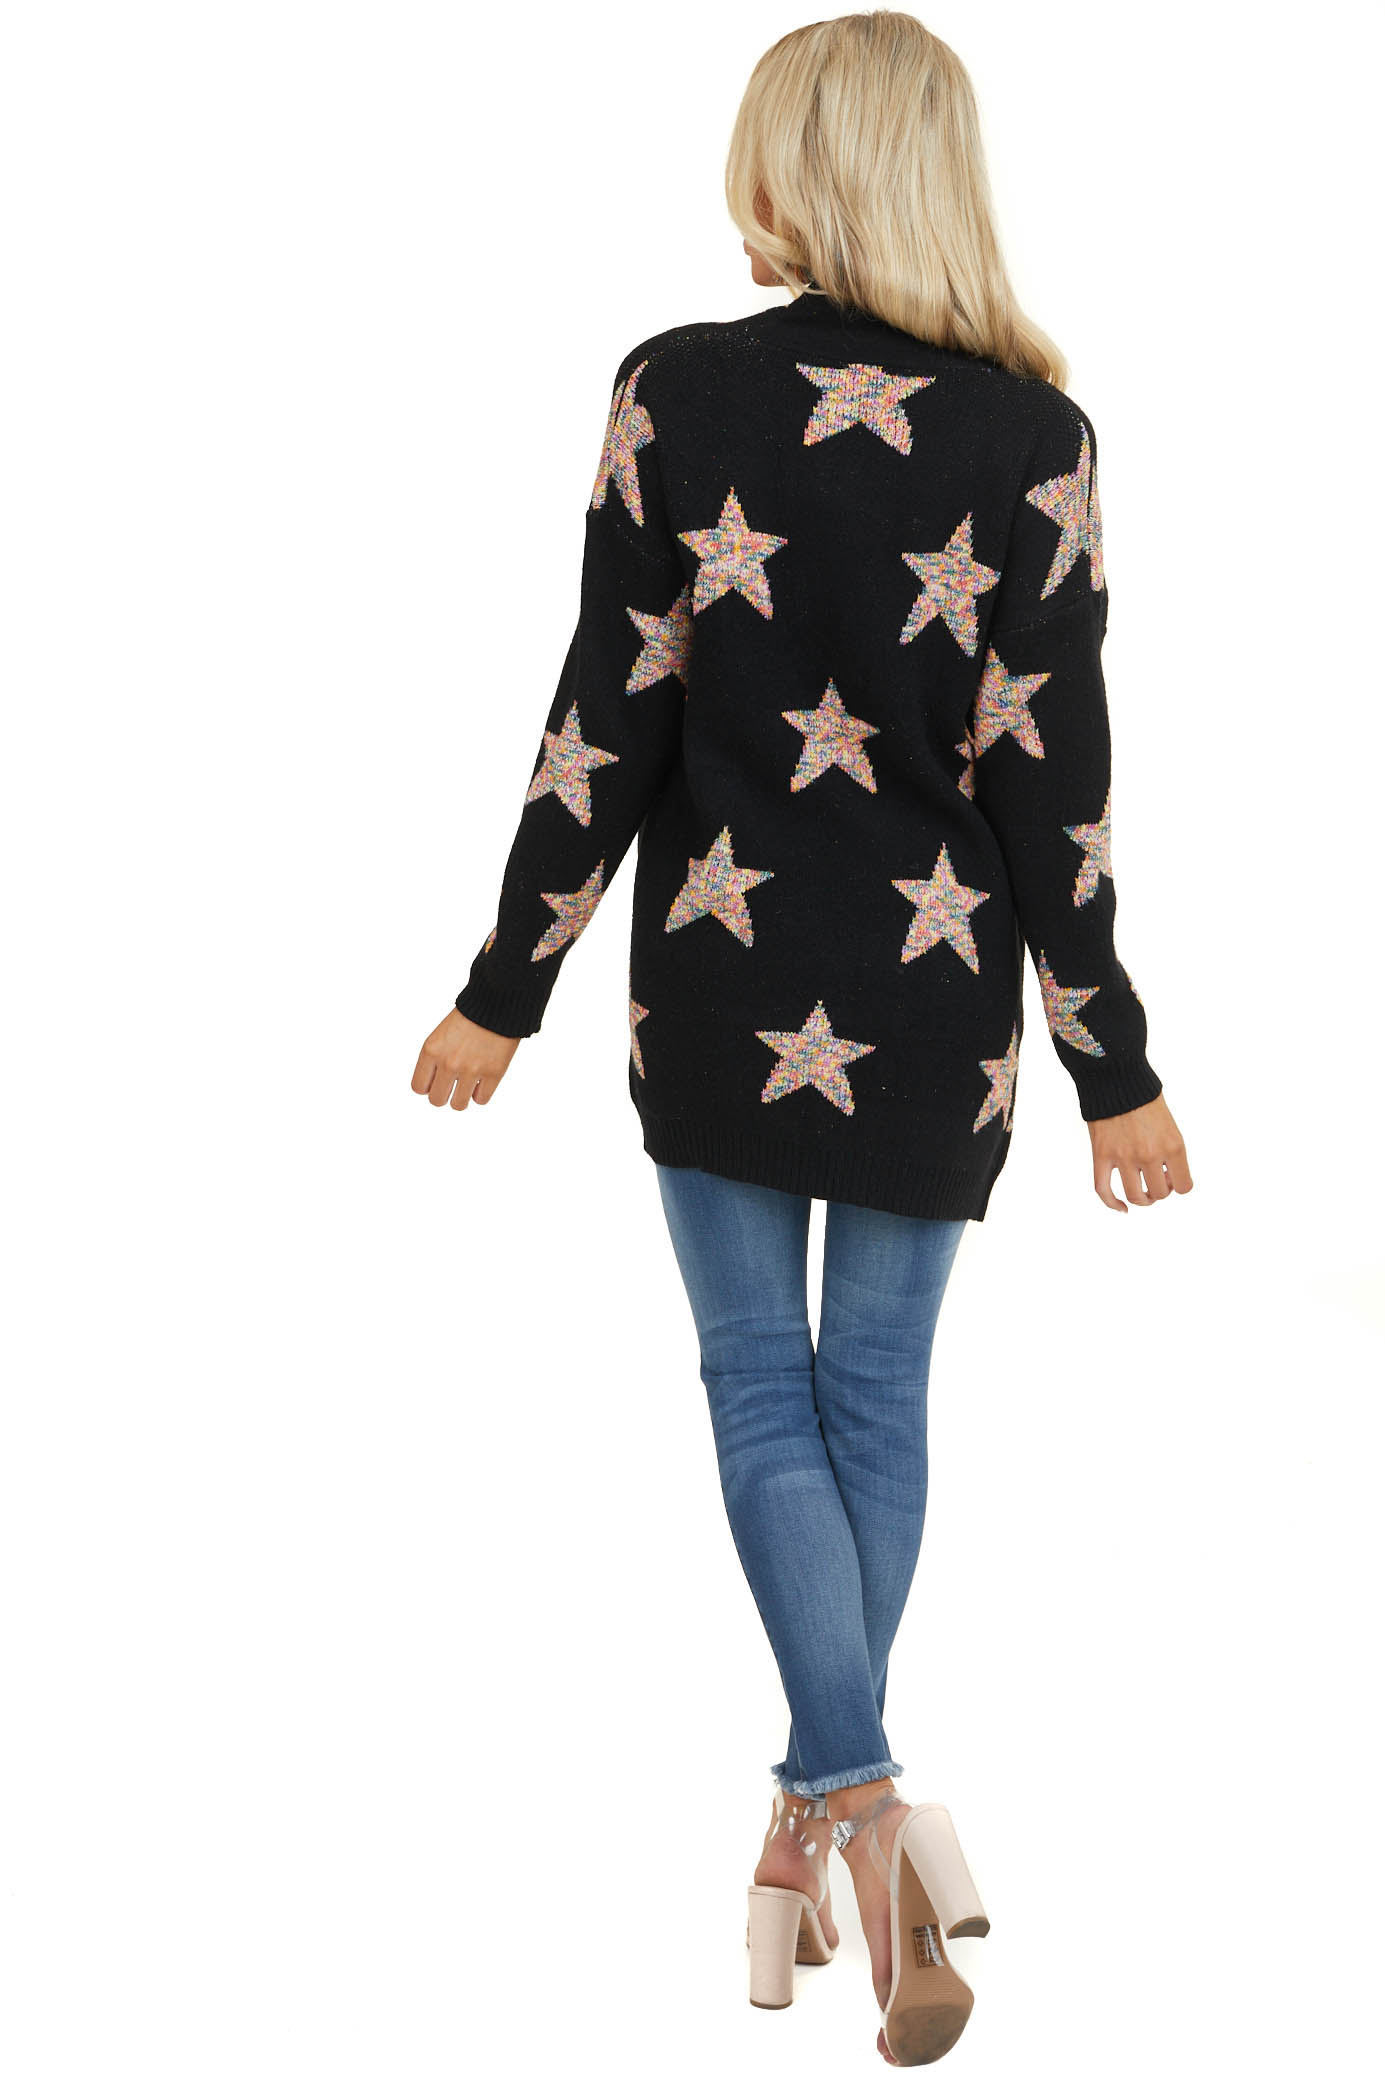 Black Star Print Long Sleeve Cardigan with Front Pockets